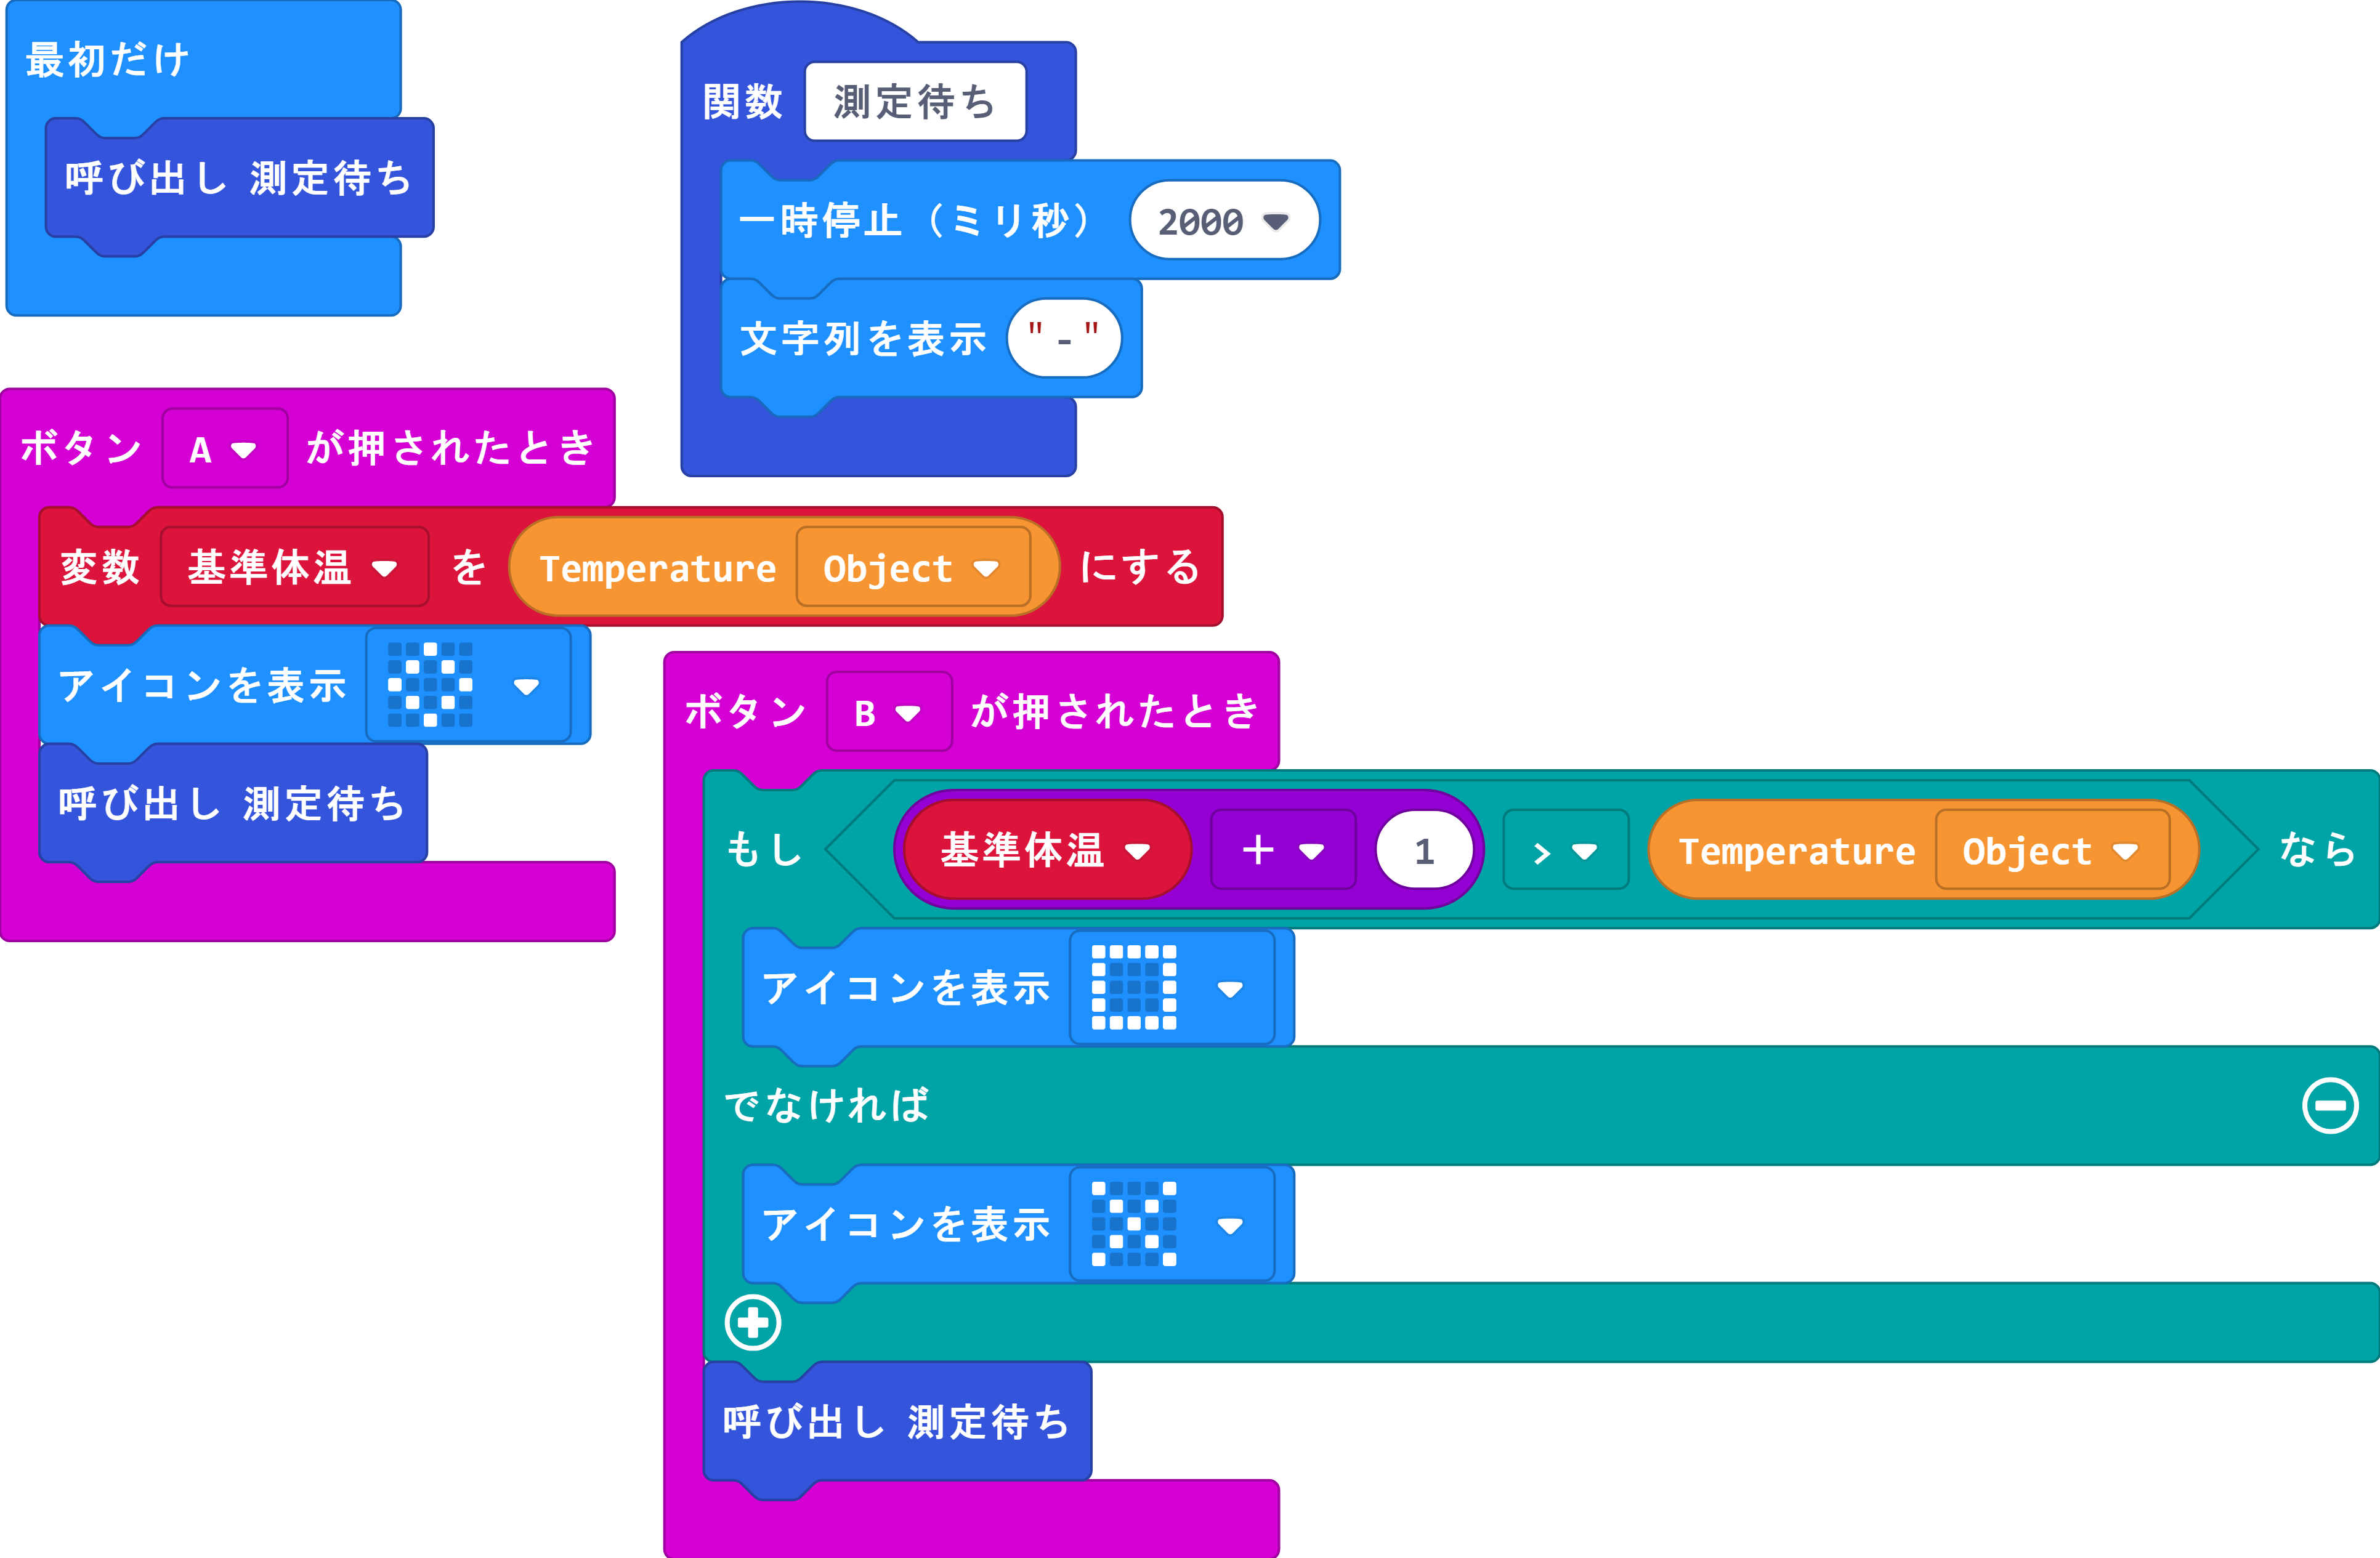 microbit-画面コピー (65).png